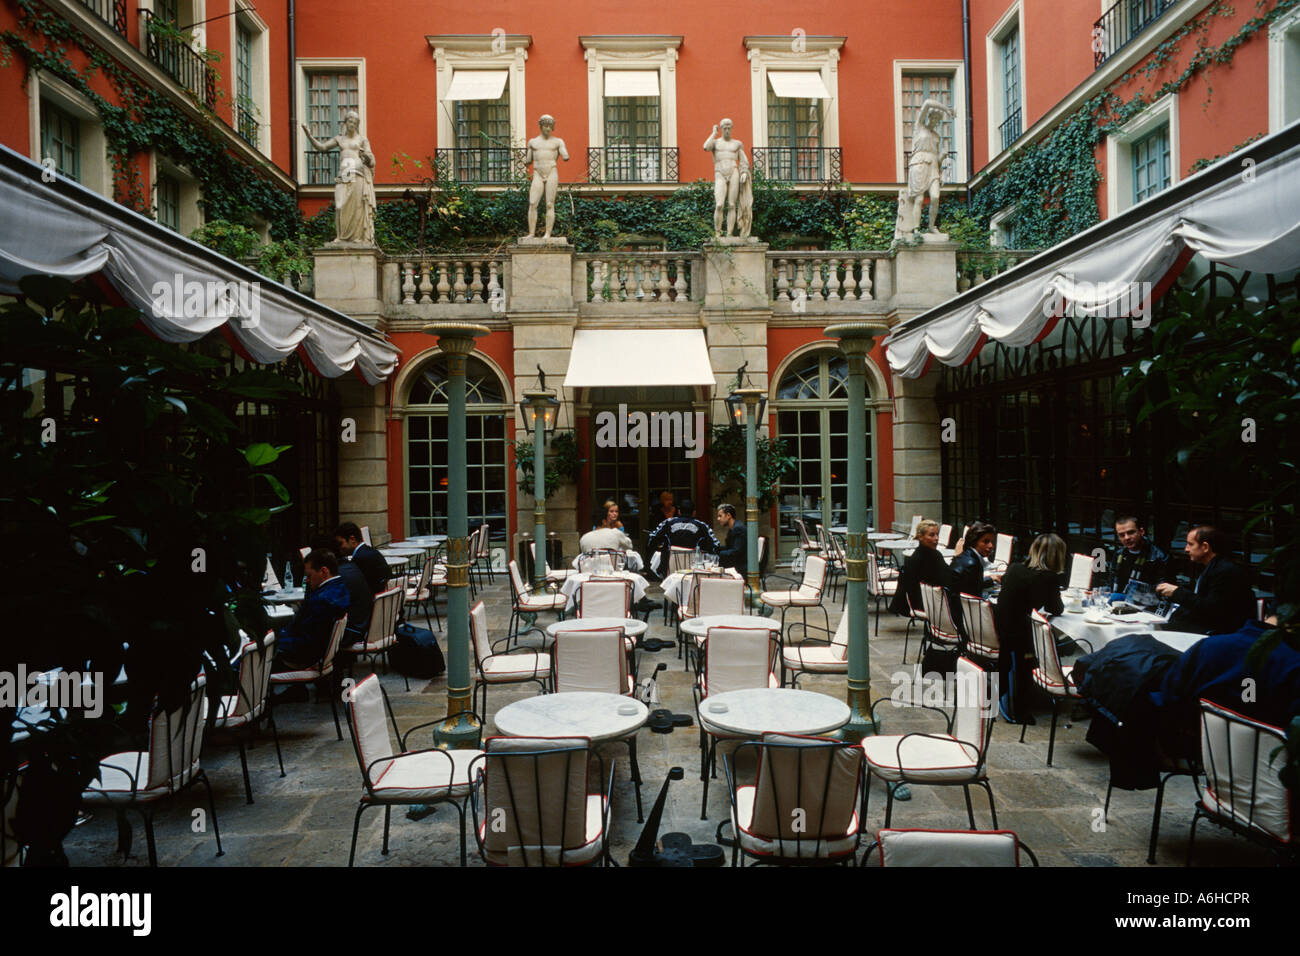 Restaurant Cost Paris